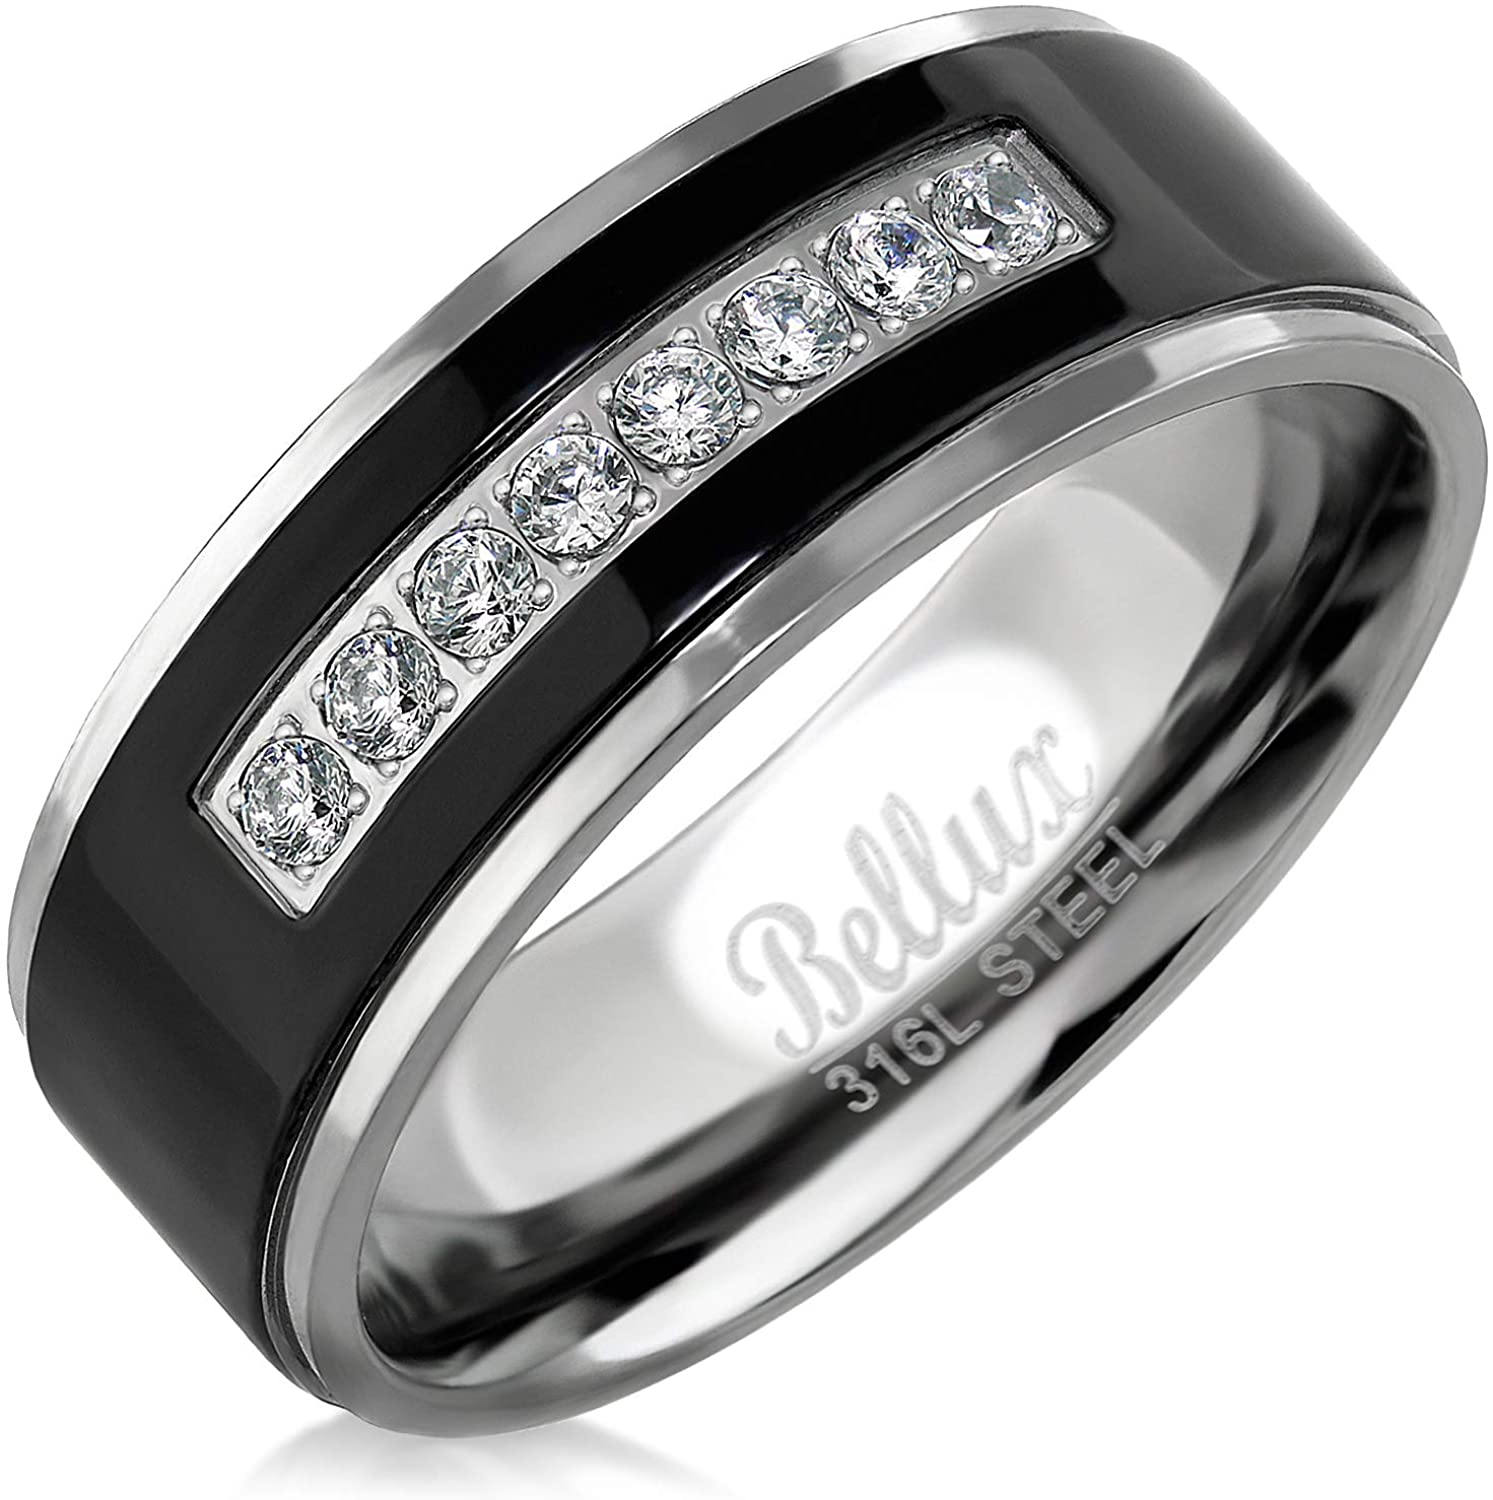 It is just a graphic of Mens Wedding Bands Stainless Steel Promise Rings for Him Silver Black Comfort-Fit Engagement Jewelry